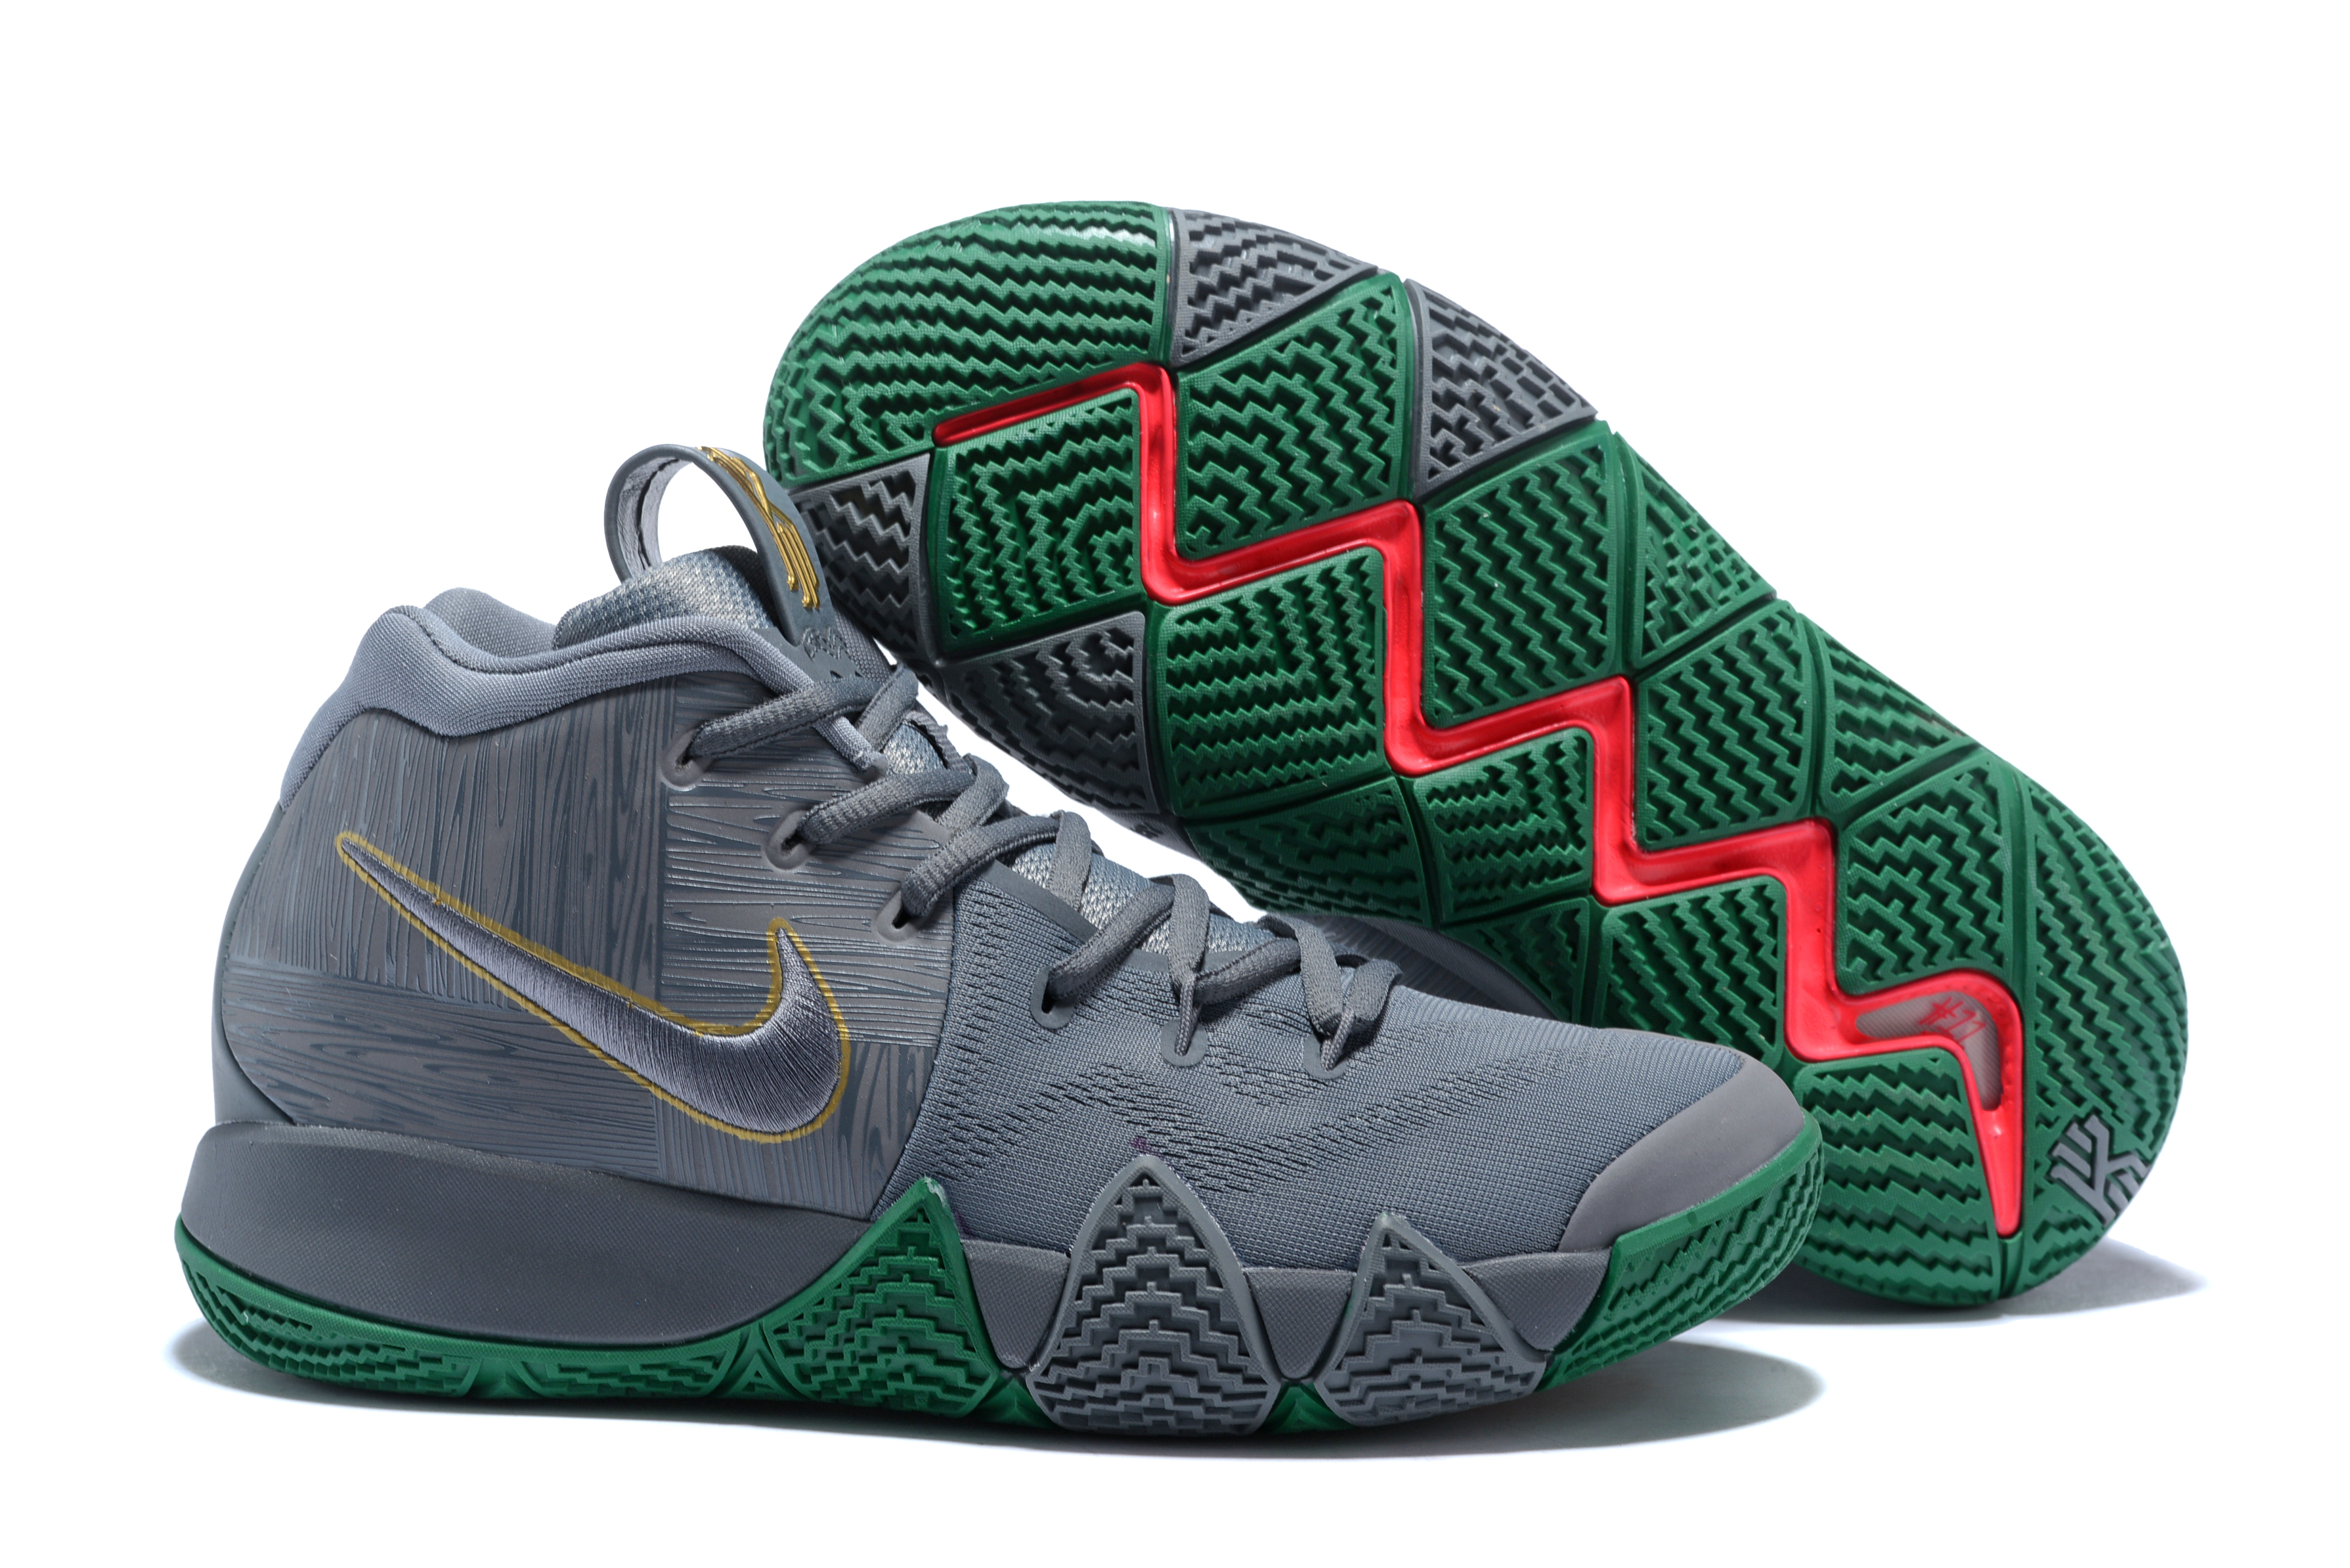 2018 Nike Kyrie 4 Grey Green Shoes